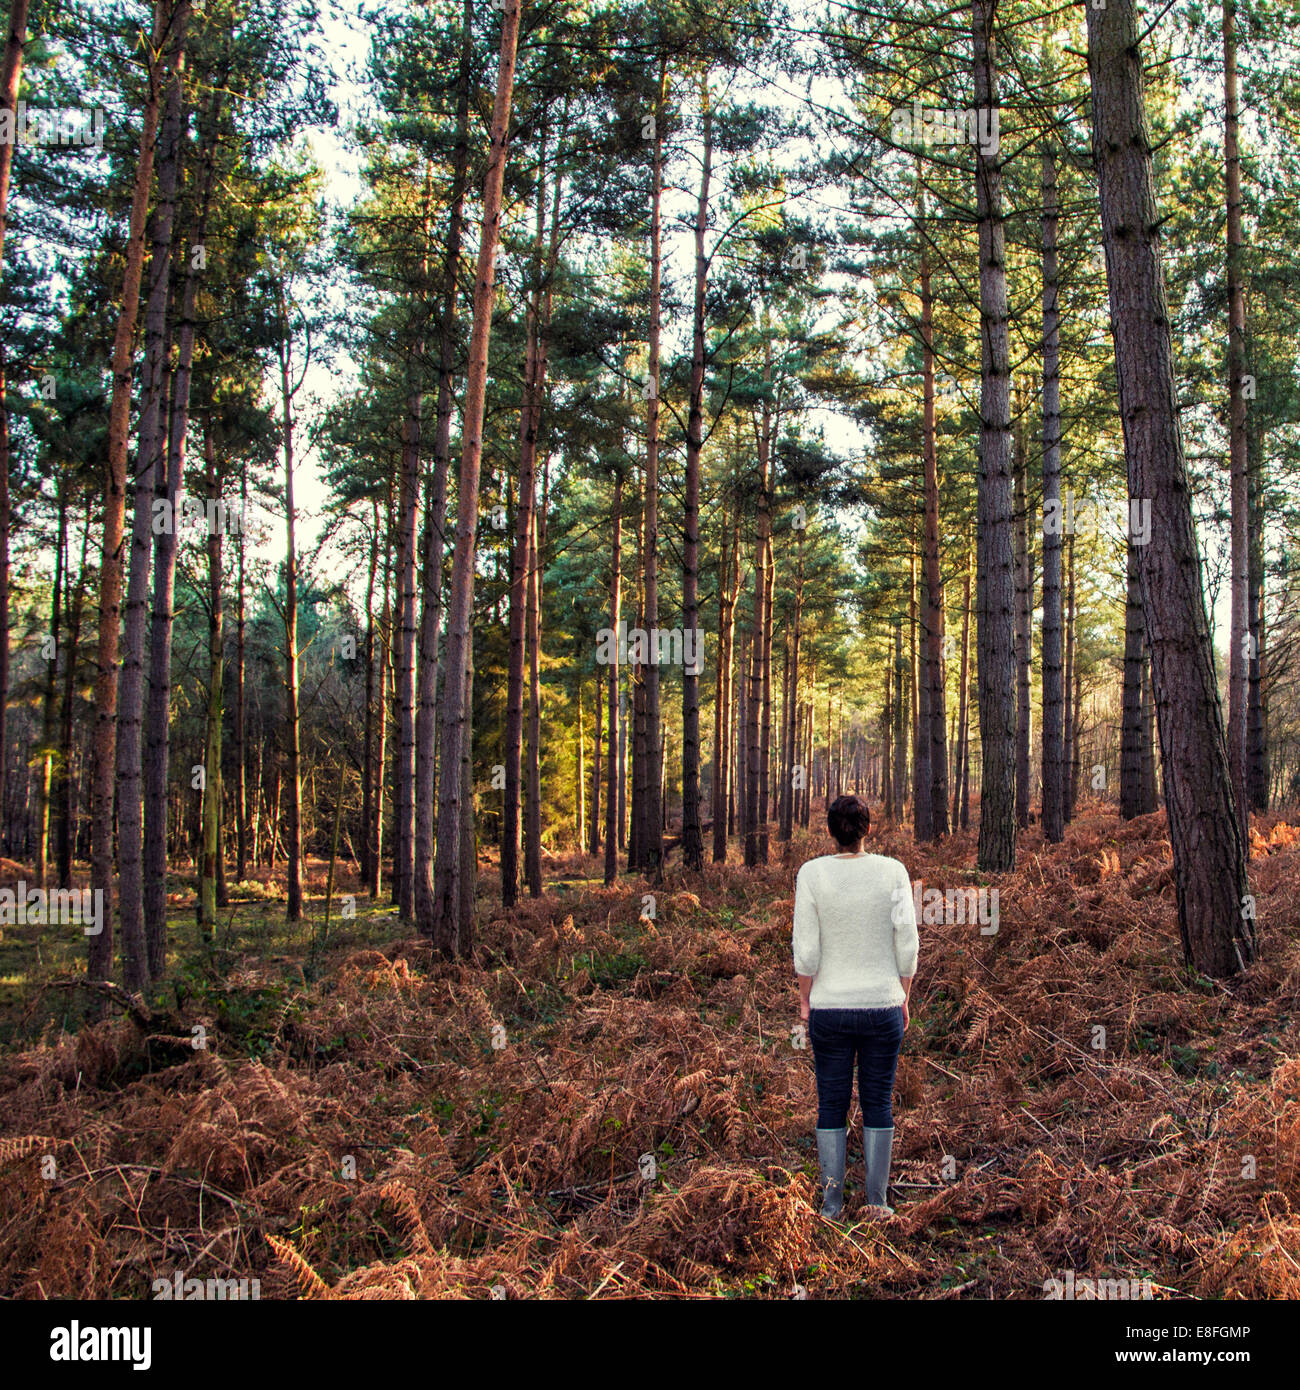 Rear view of woman standing in forest Photo Stock